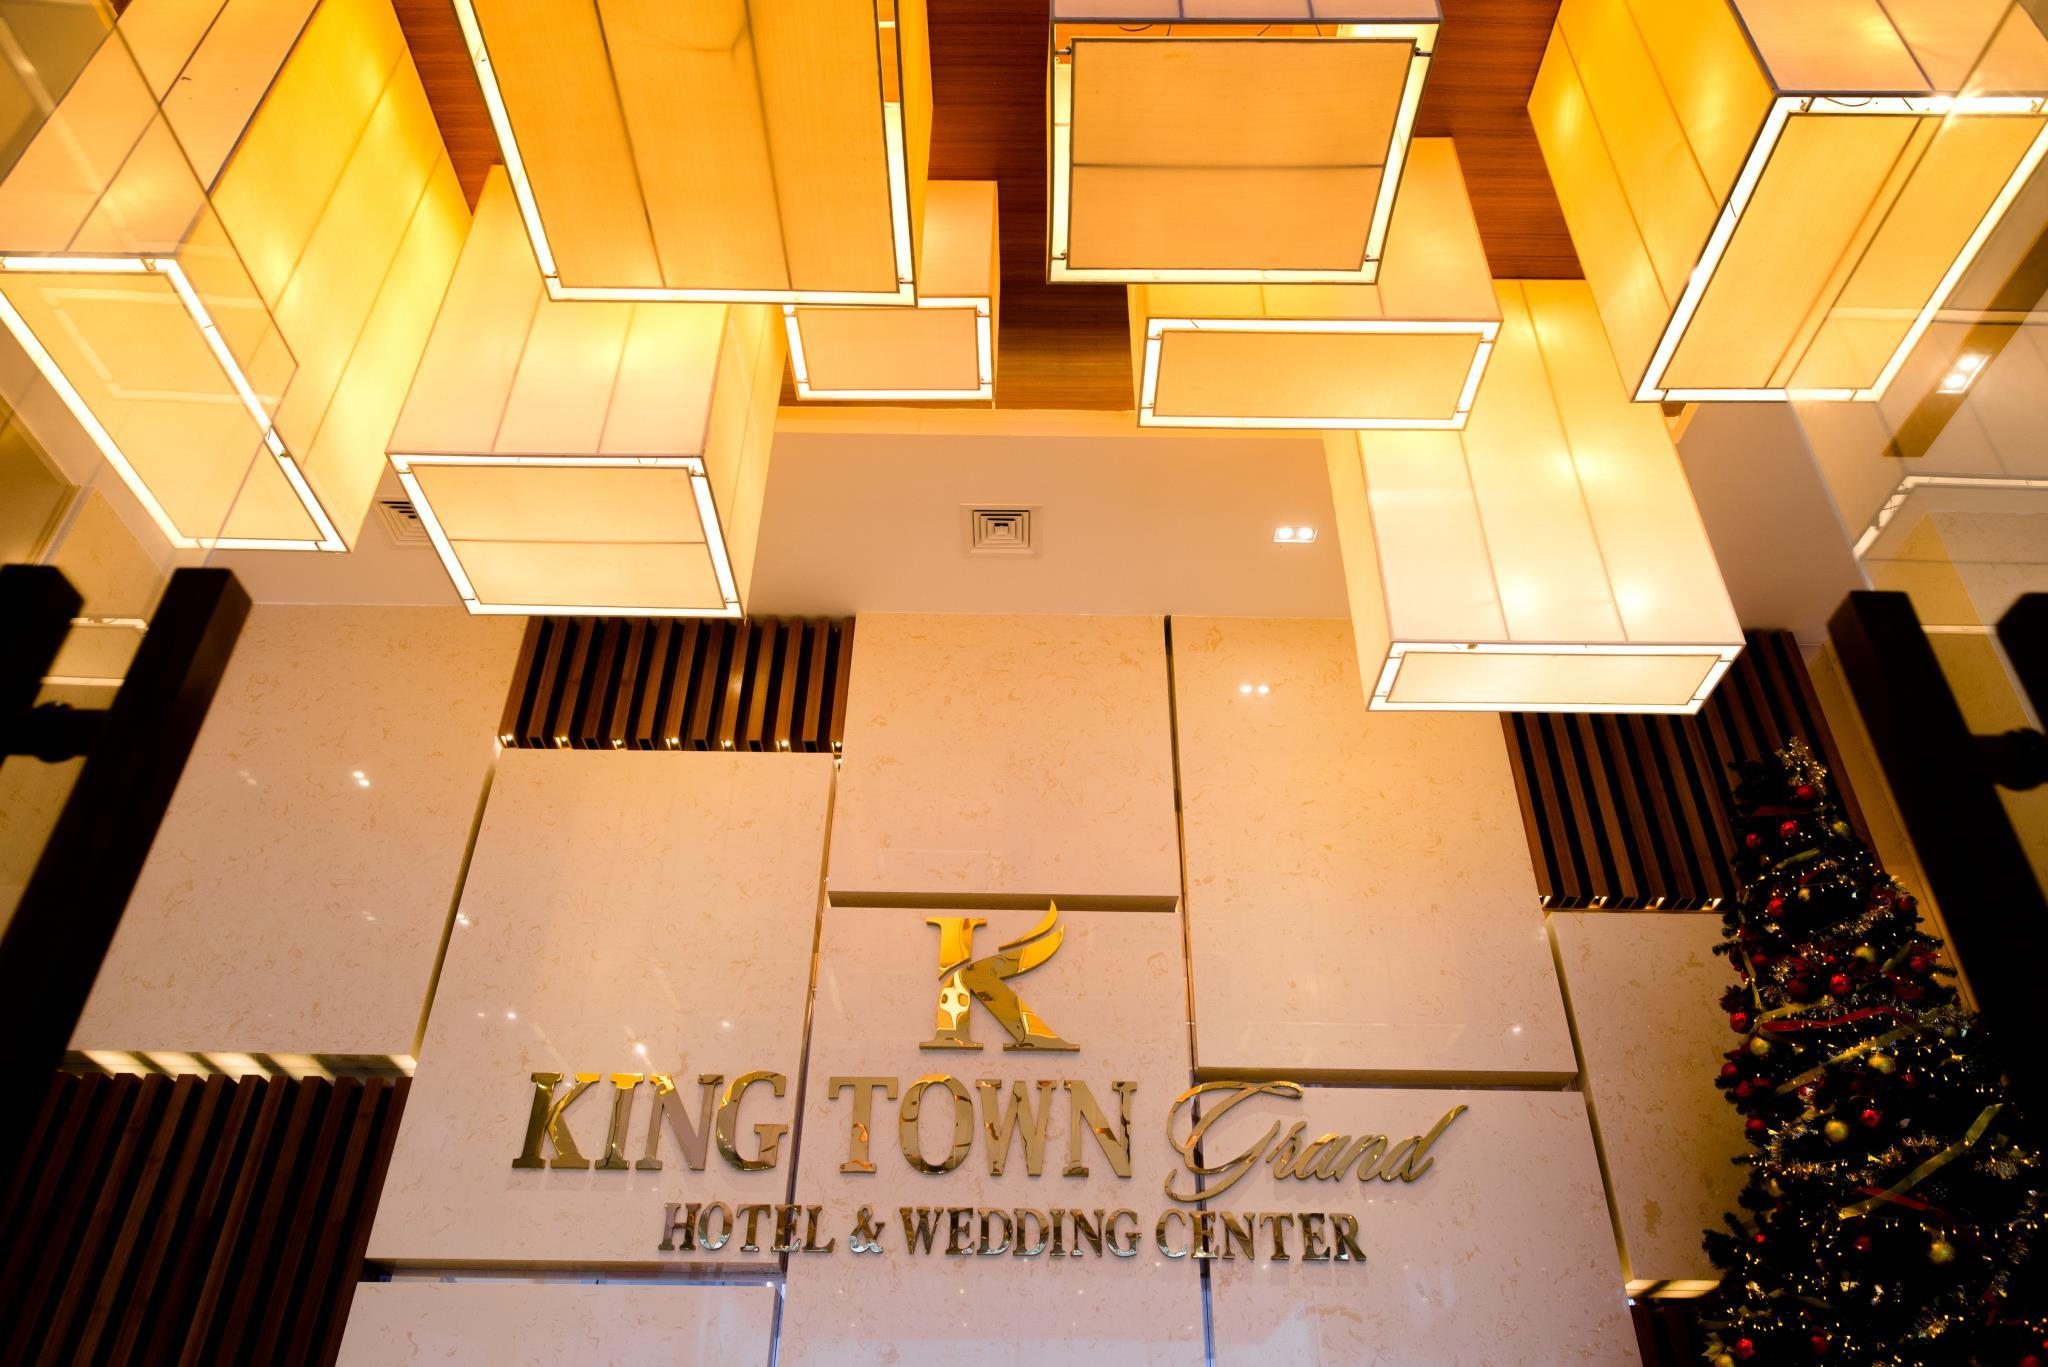 King Town Grand Hotel And Wedding Center